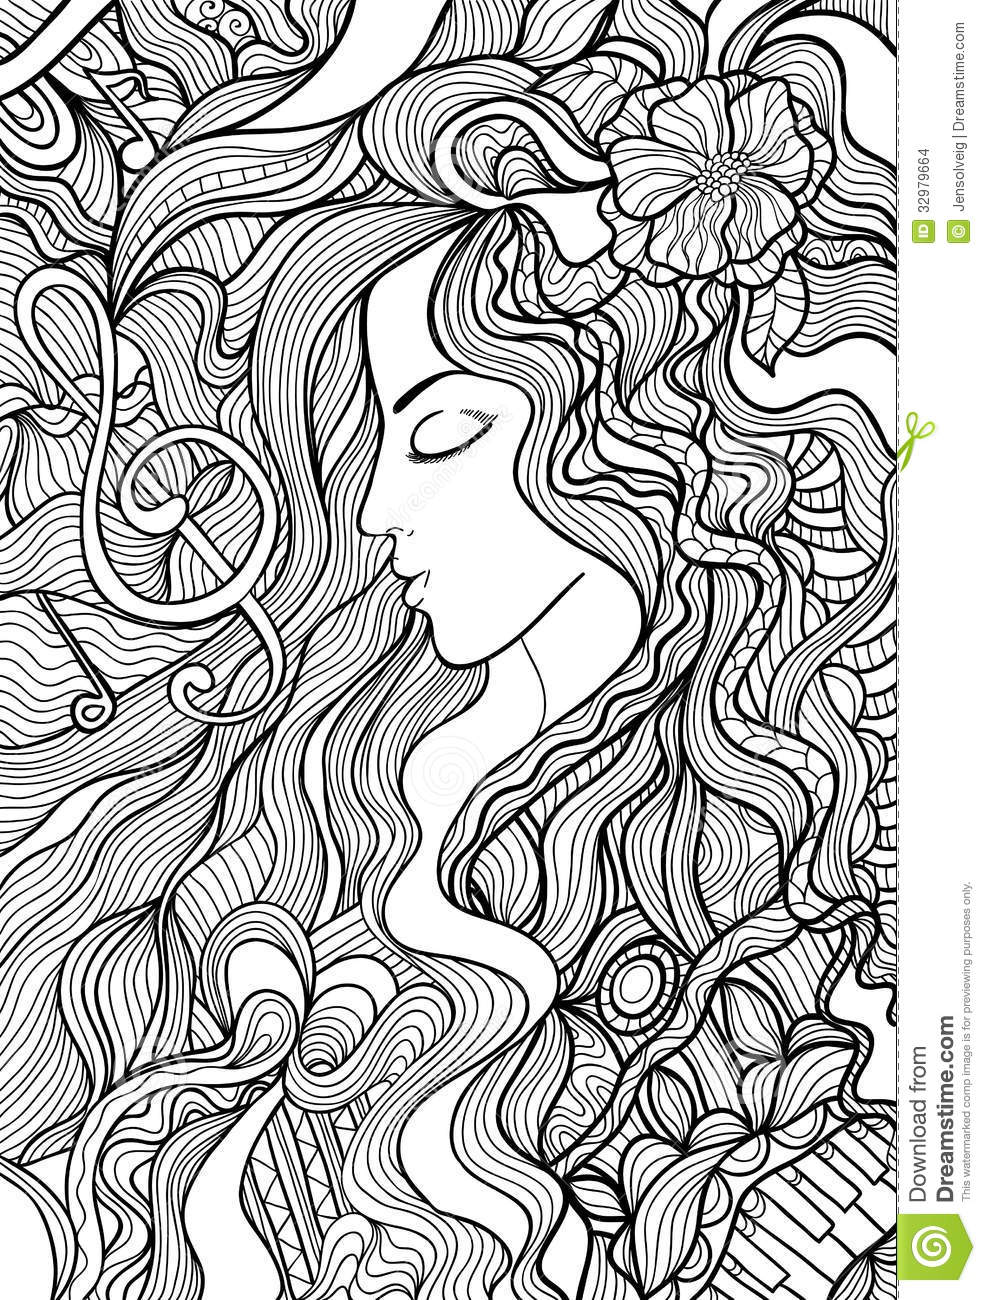 musical illustration stock images